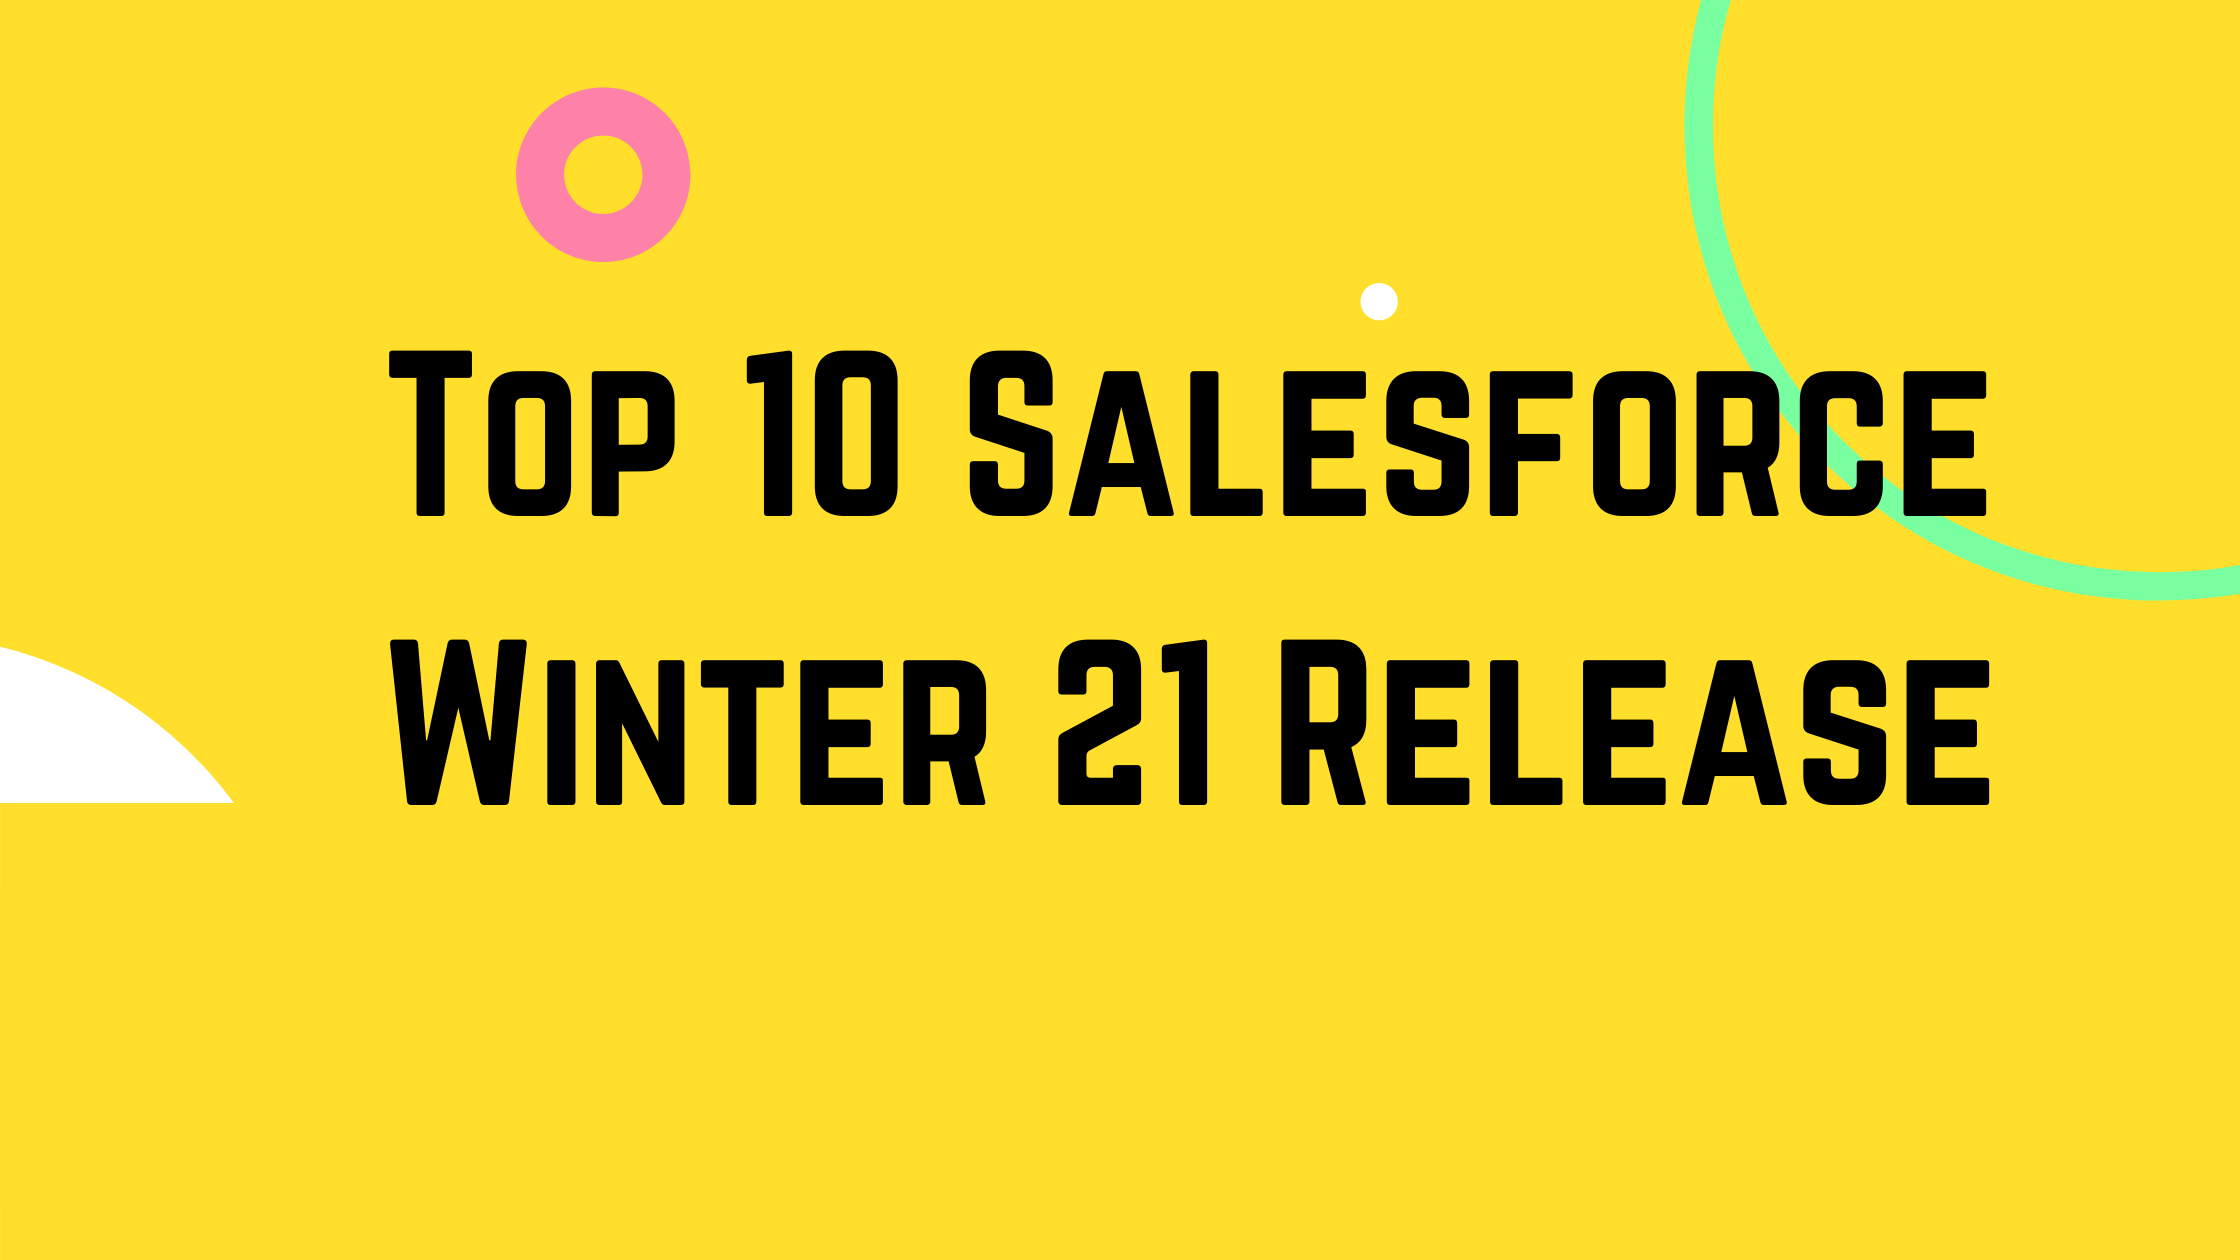 Top 10 Salesforce Winter 21 Release